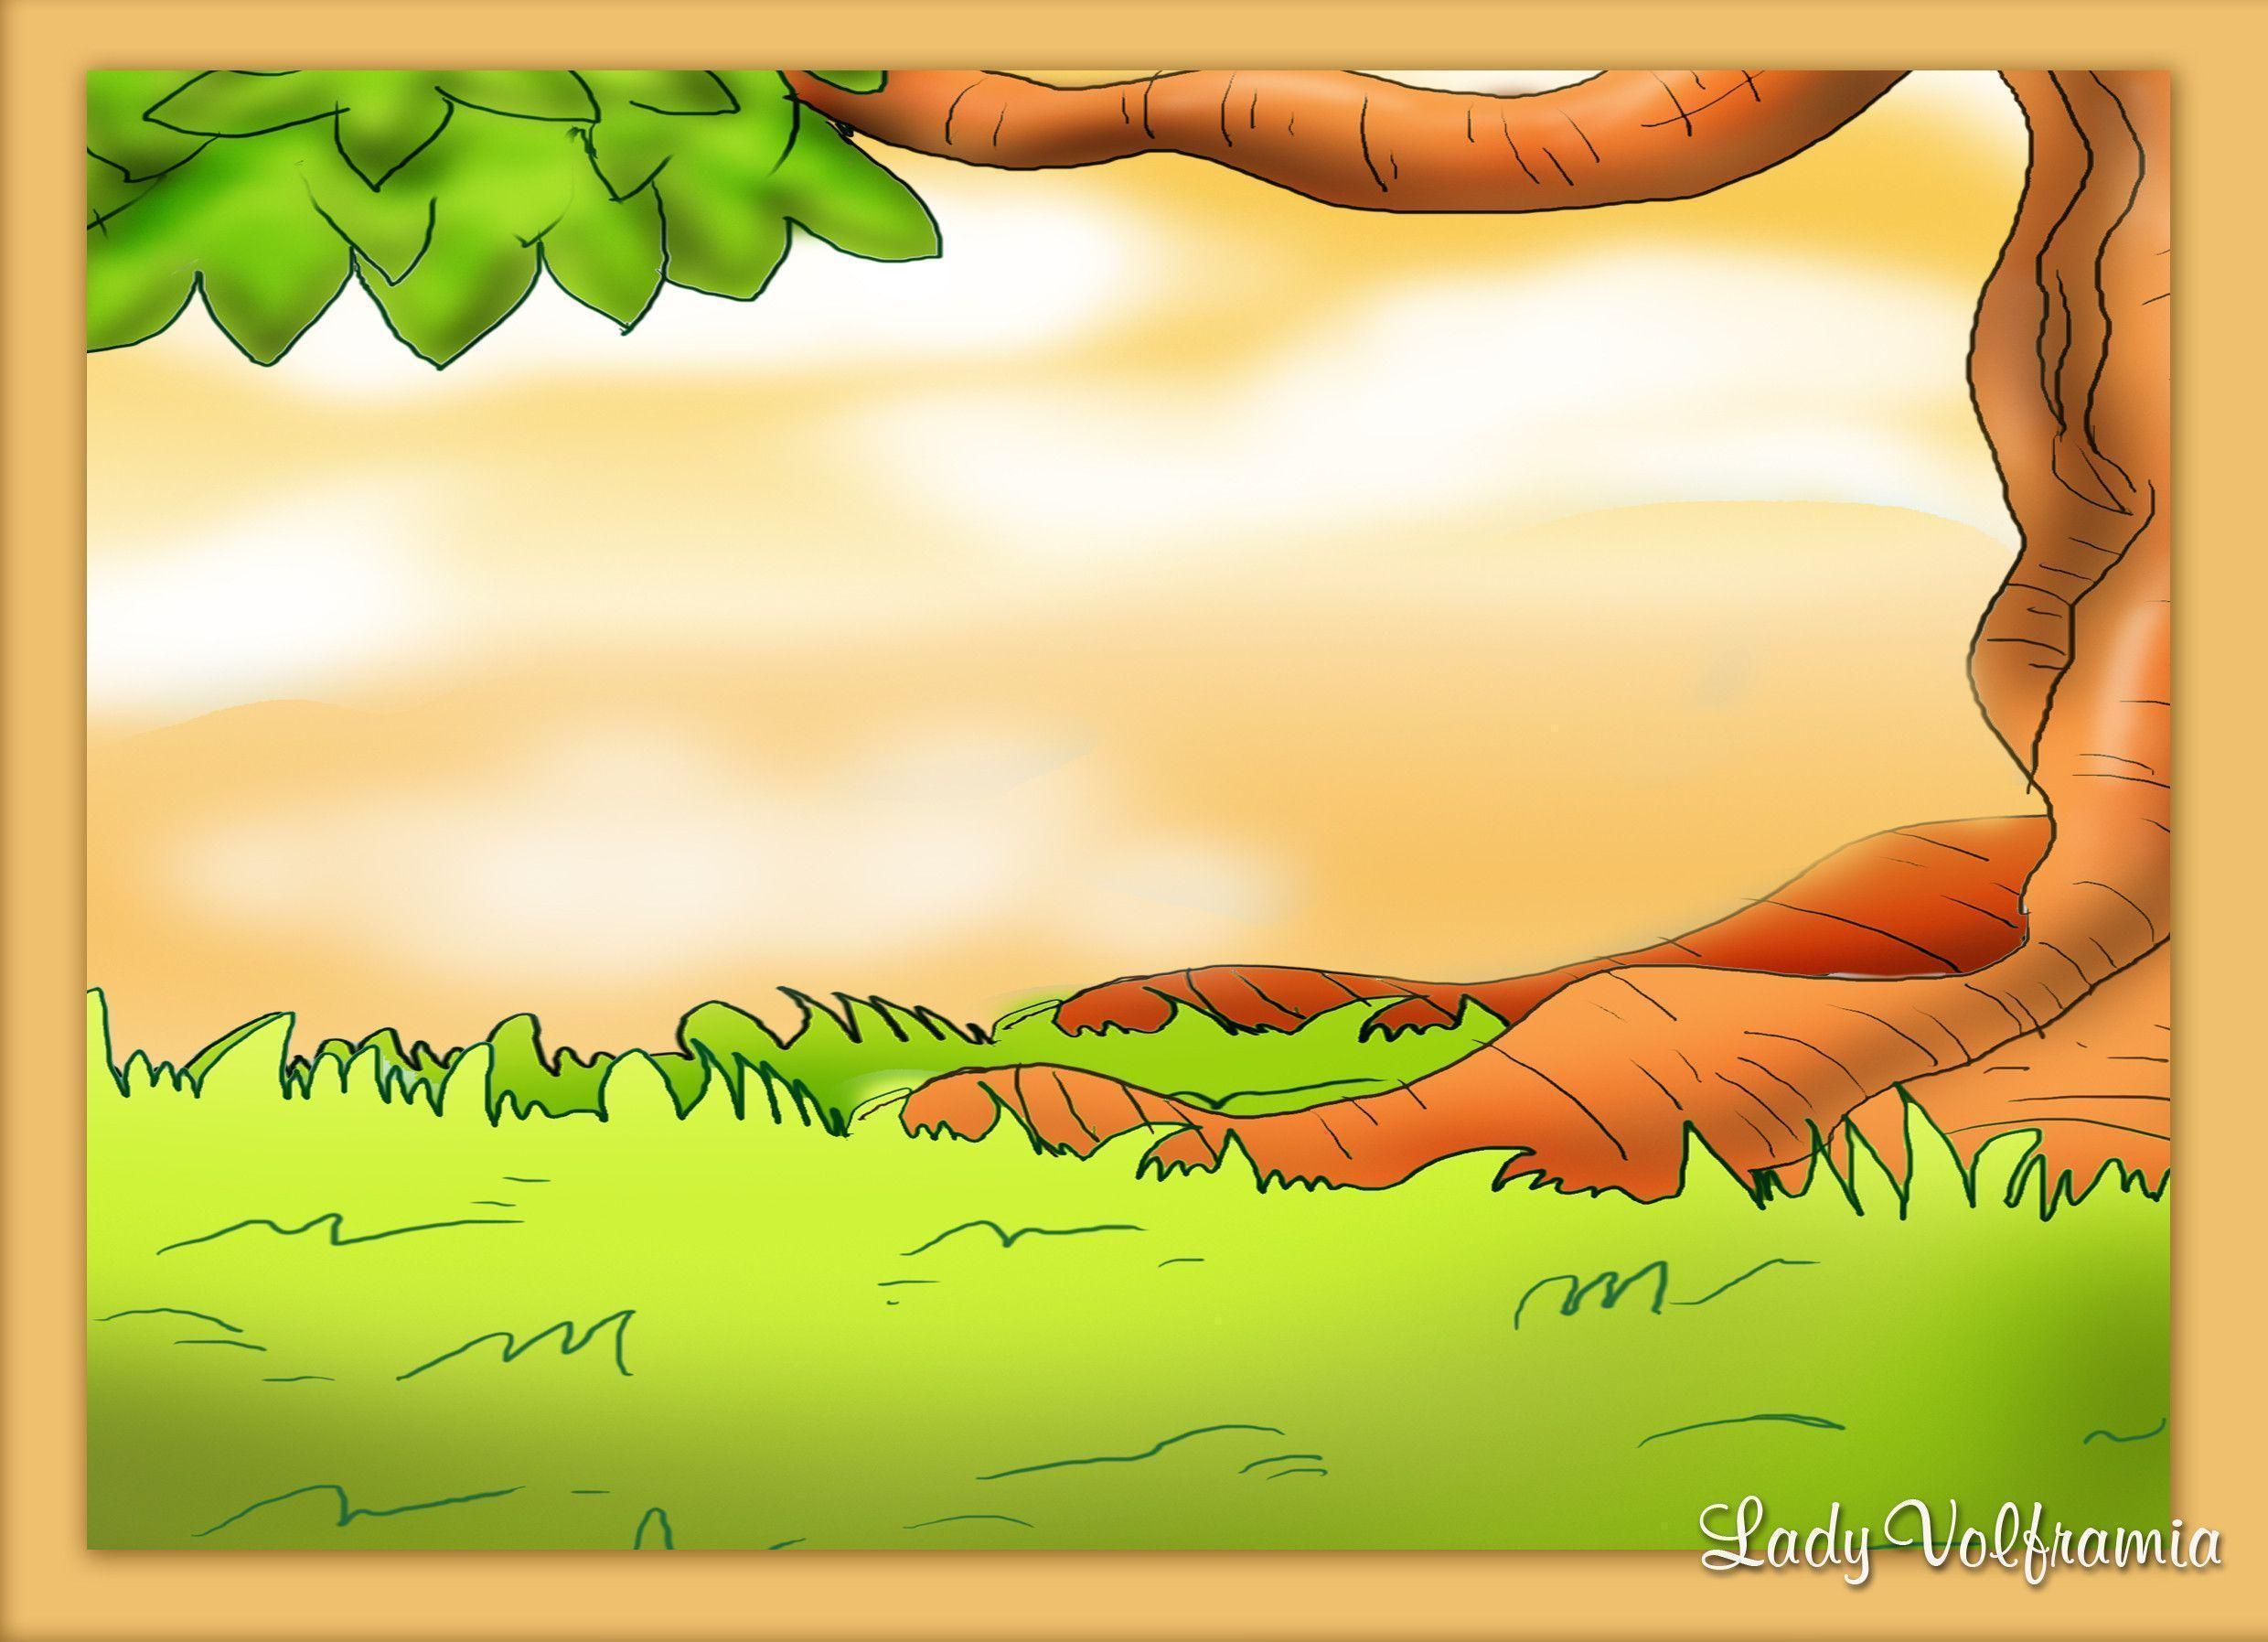 winnie pooh background by volframia20 on DeviantArt